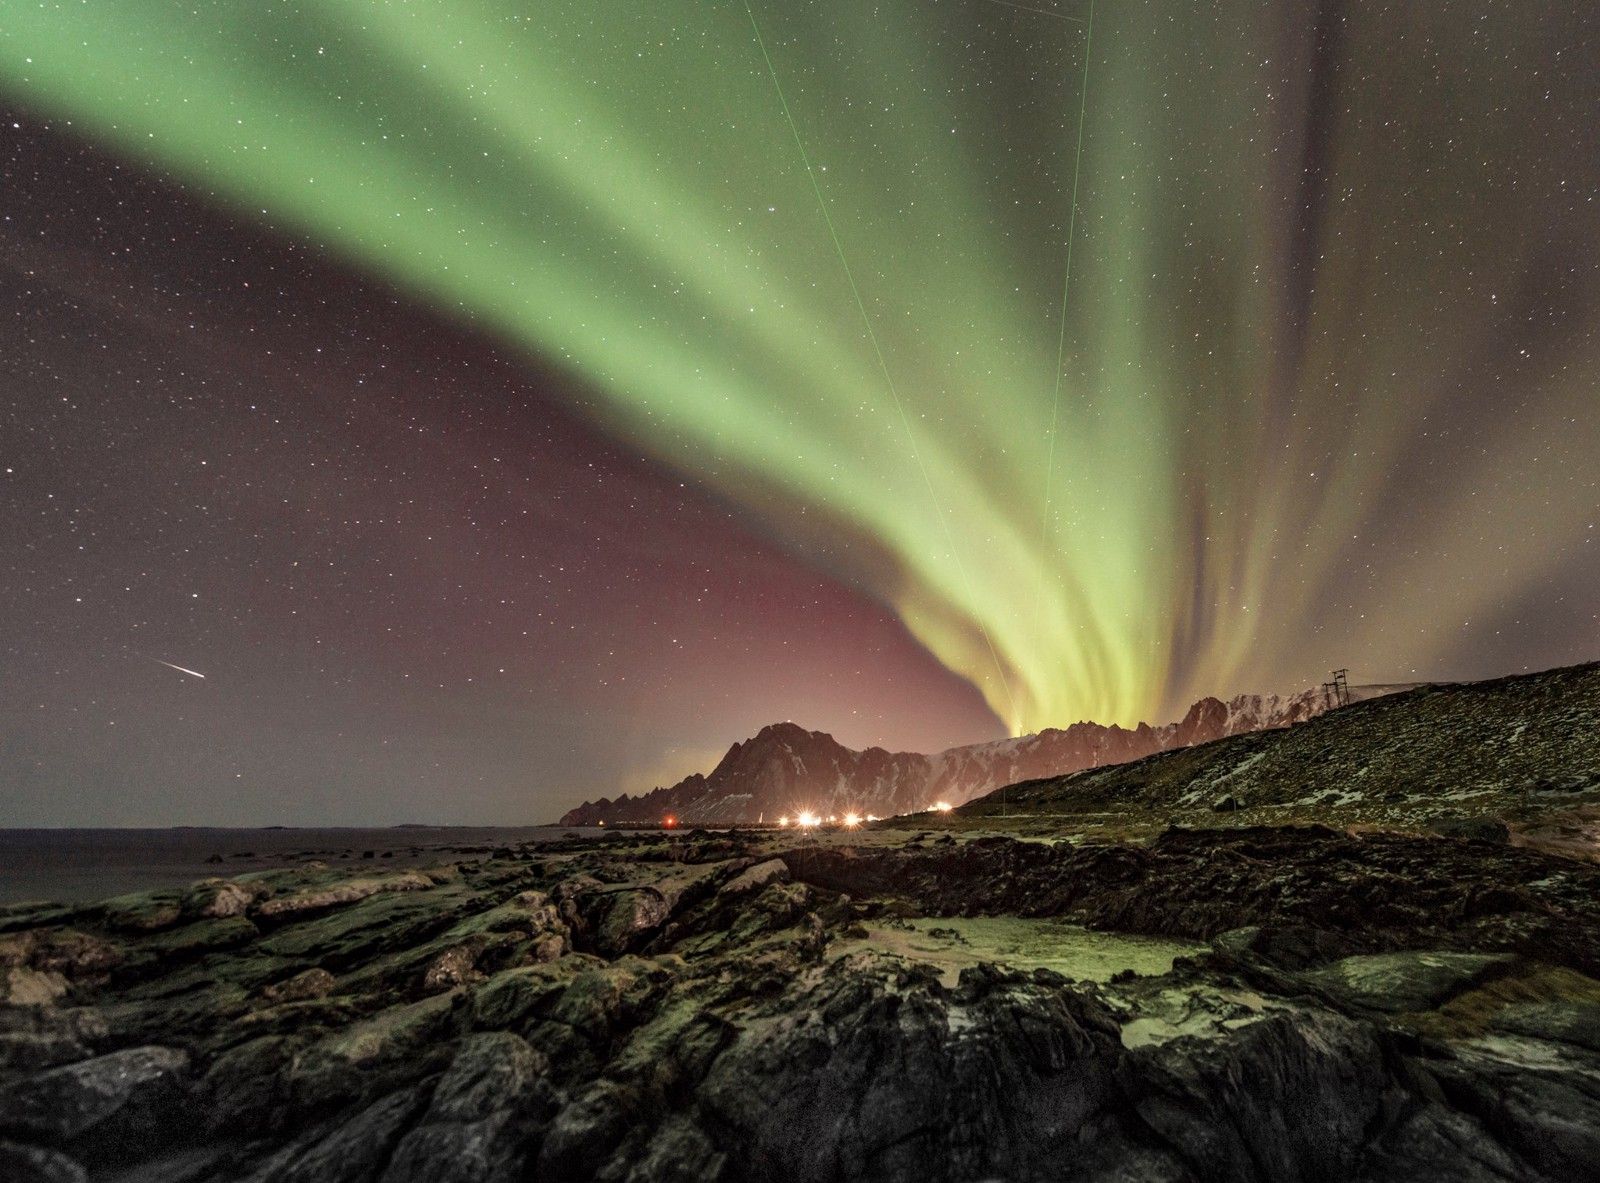 Bleik, Andøya, Norway — From the mountain you can see the two lasers from the Alomar Observatory. (Photo © Ola Albert Bjerrang)